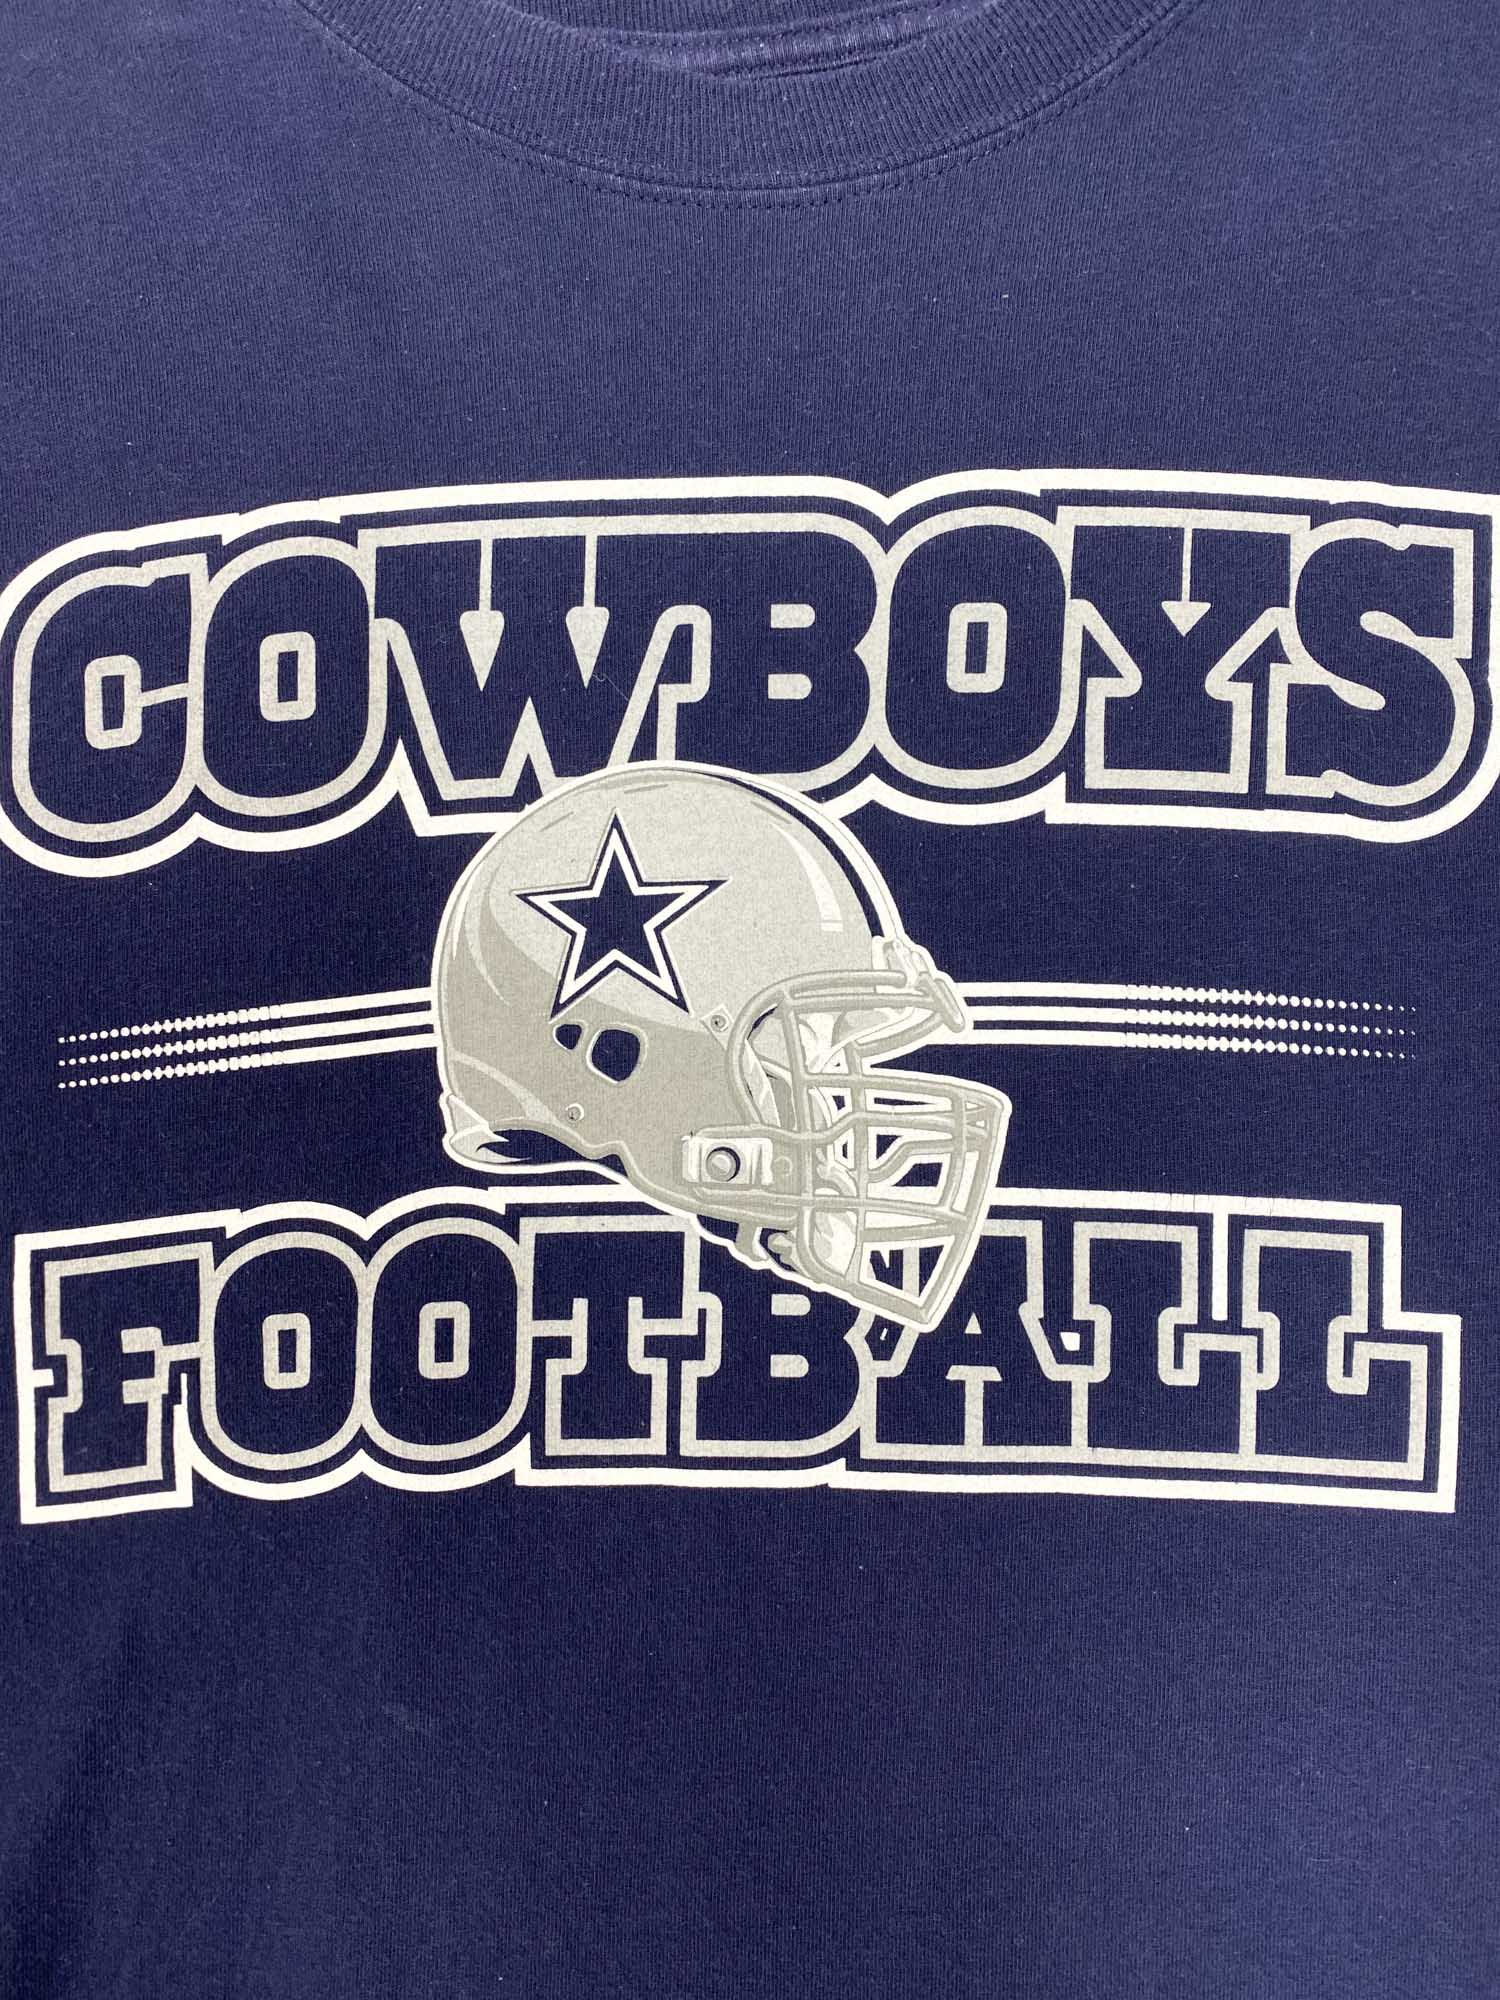 VINTAGE DALLAS COWBOYS FOOTBALL TEE